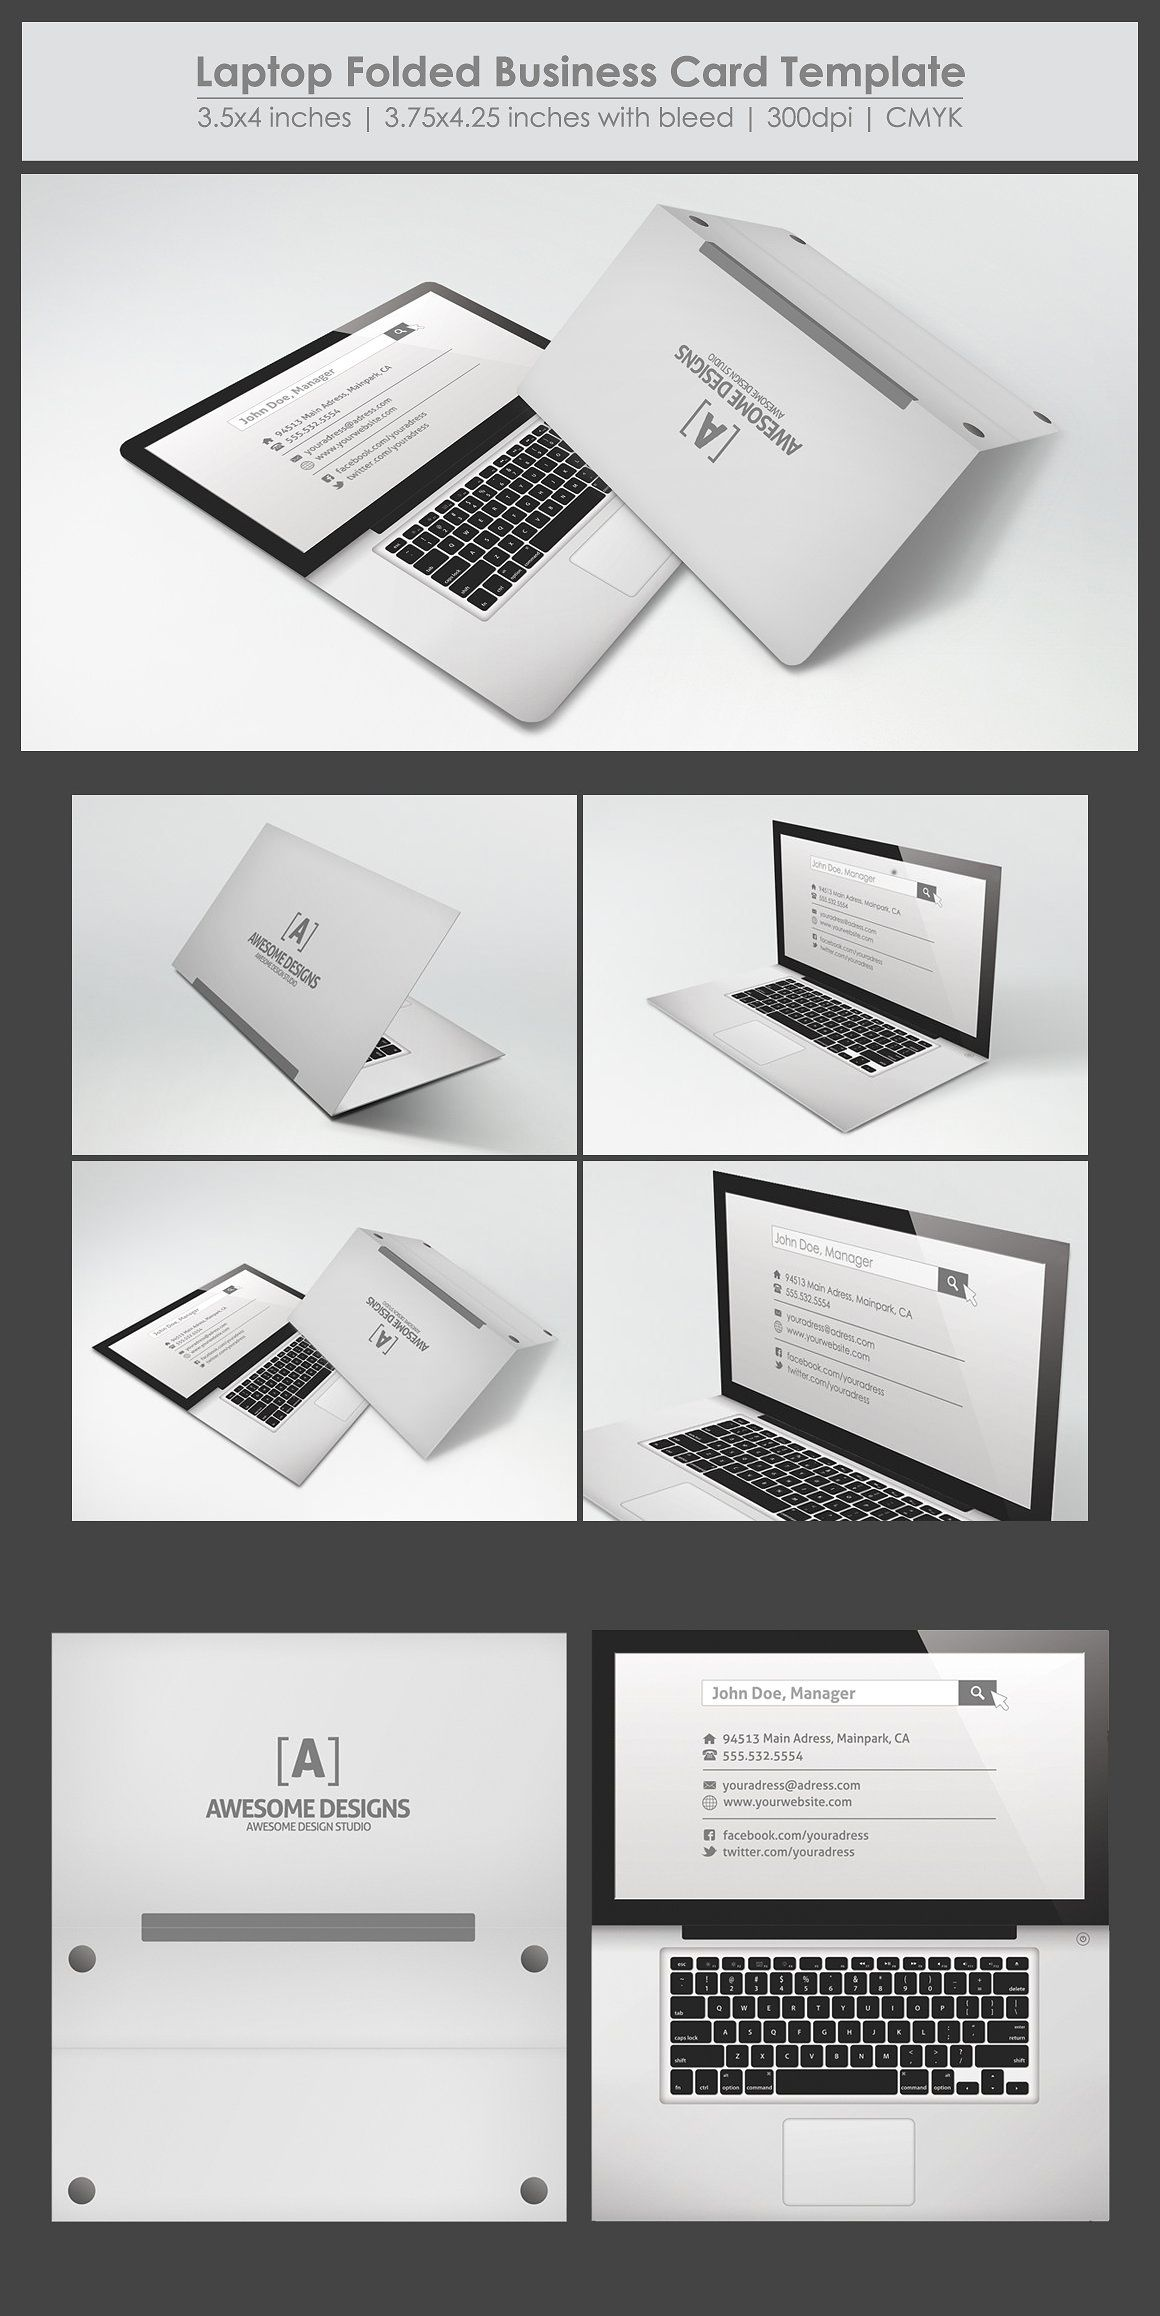 Laptop folded business card template business card template laptop folded business card template accmission Gallery